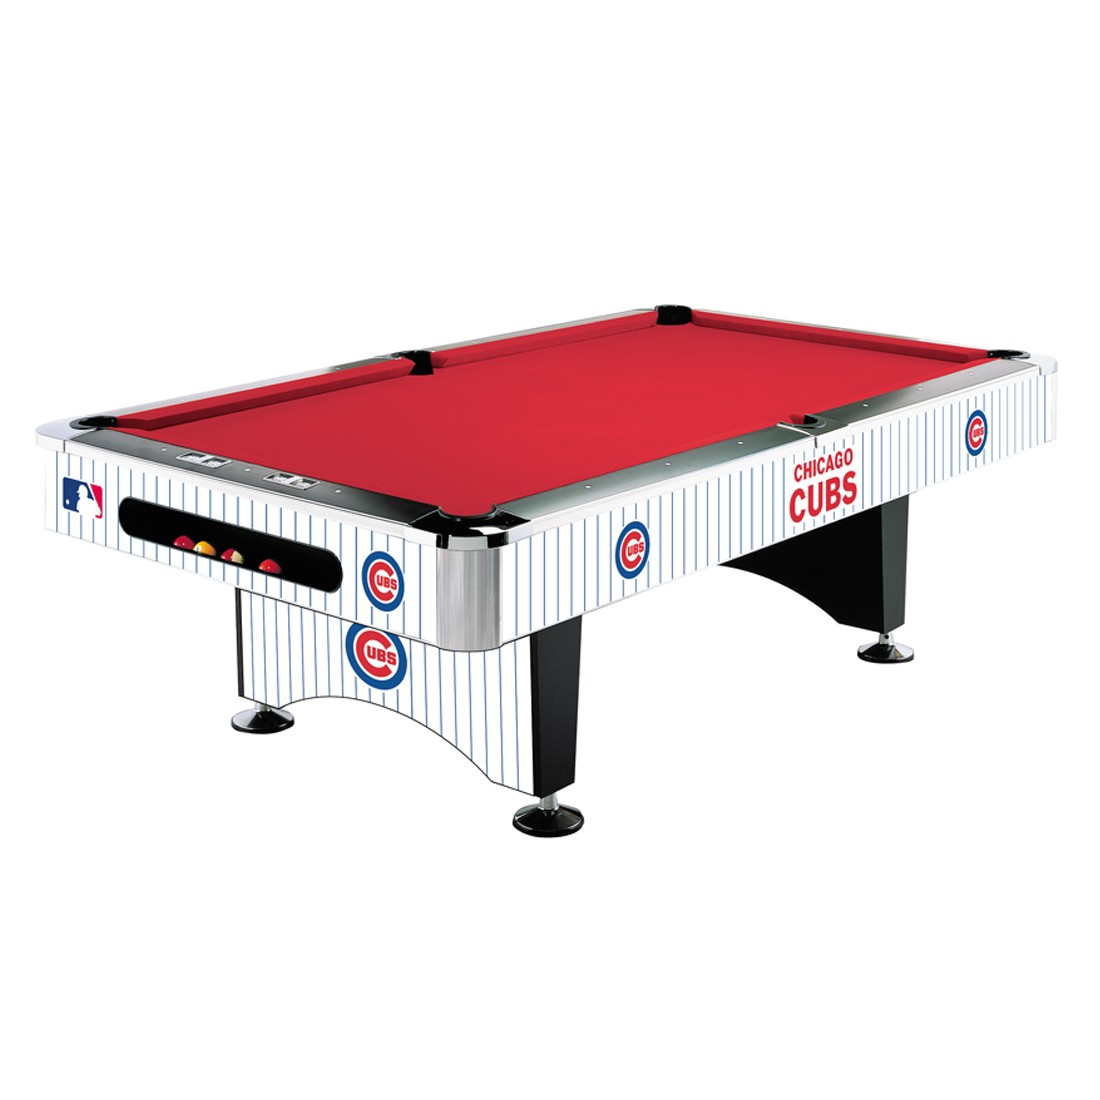 CHICAGO CUBS 8-FT. POOL TABLE